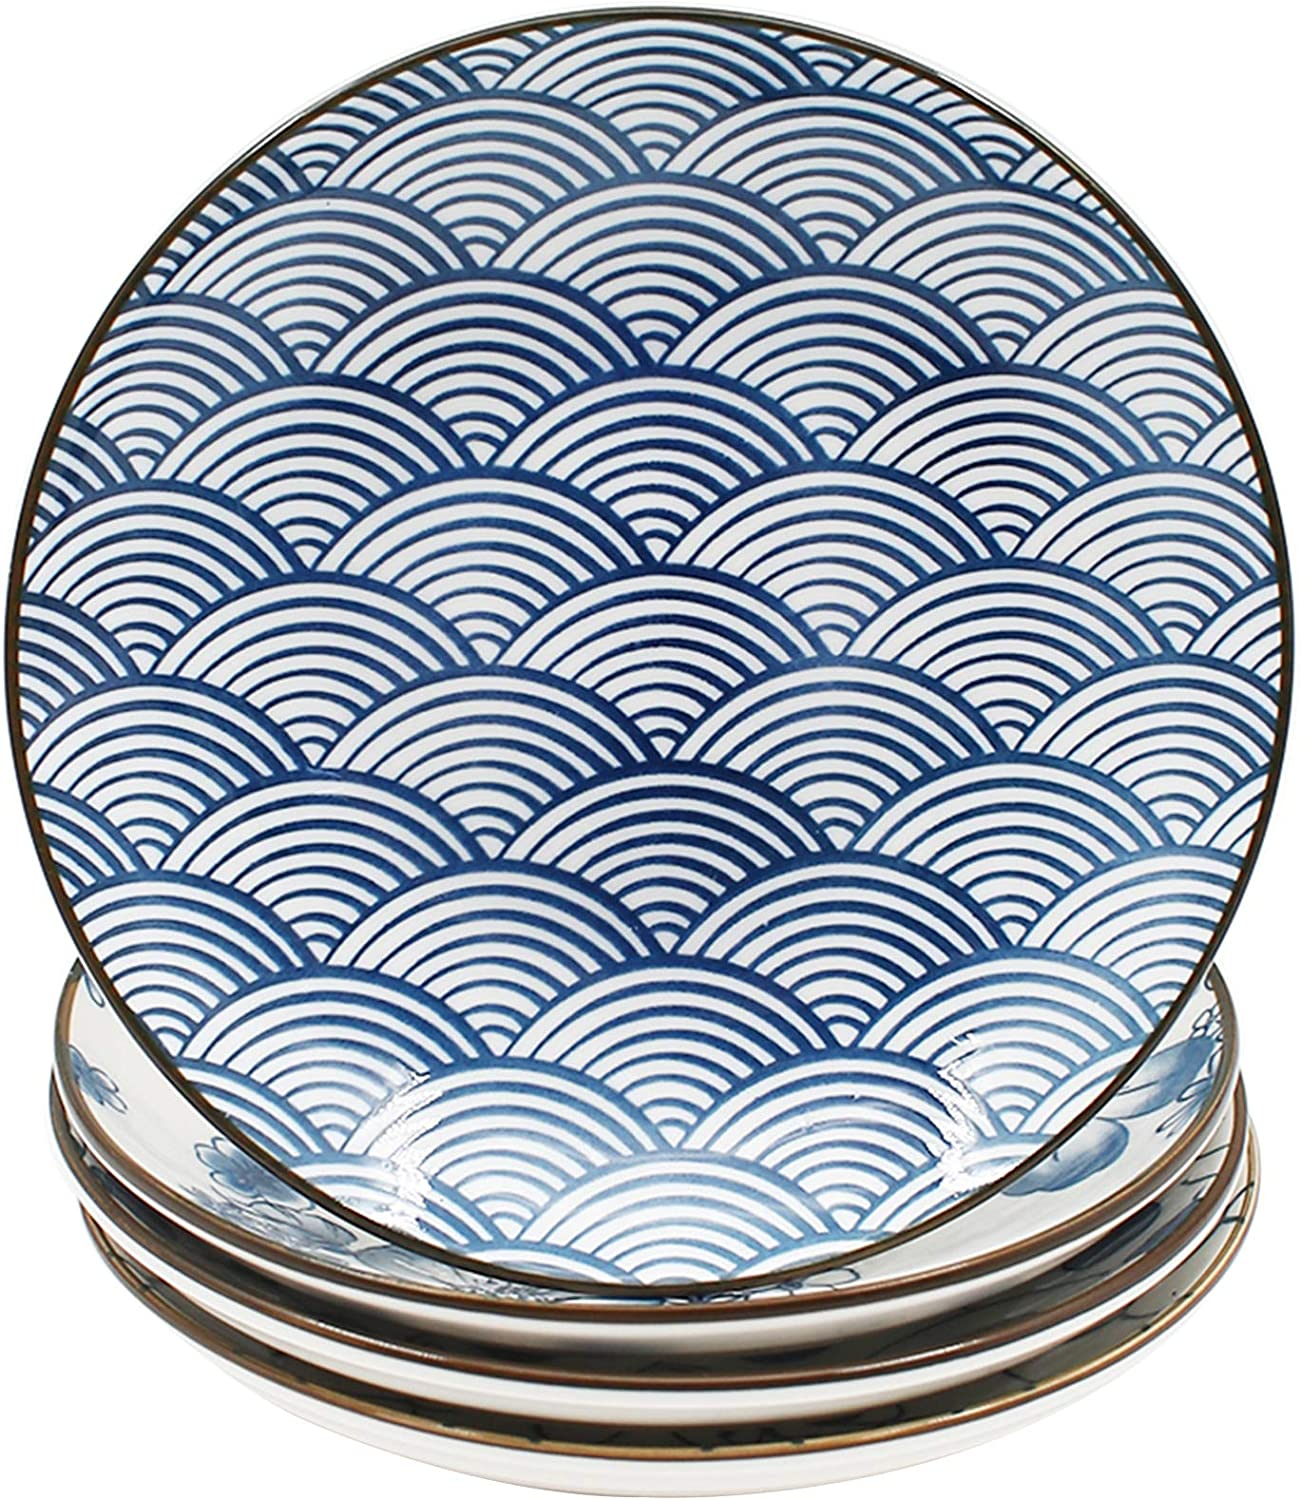 YALONG Ceramic Dinner Plate Set 7 Inch Appetizer Shallow Plates for Lunches, Cheese and Crackers Salad, Dessert Set of 4 Assorted Motifs for Christmas Gift